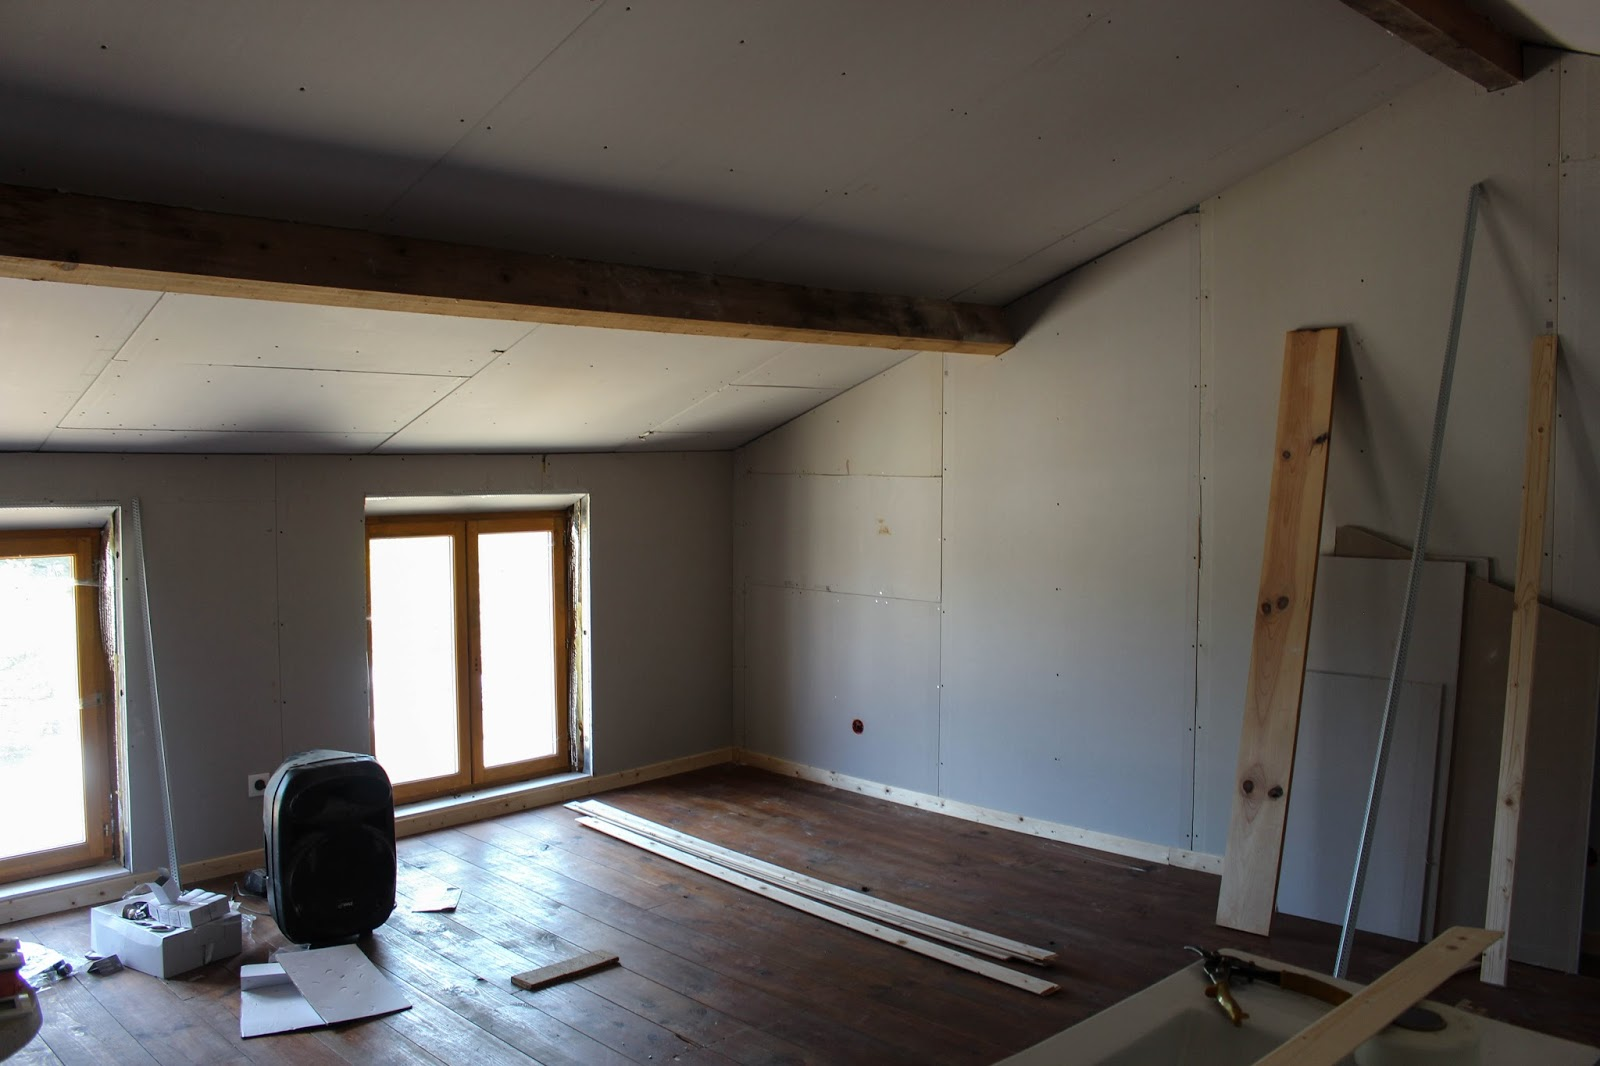 Once the walls were up I was able to picture the room clearer in terms of  furniture and decoration  A few days after this was taken  the walls were. DIY Part 1  the transformation process of my new bedroom   THE